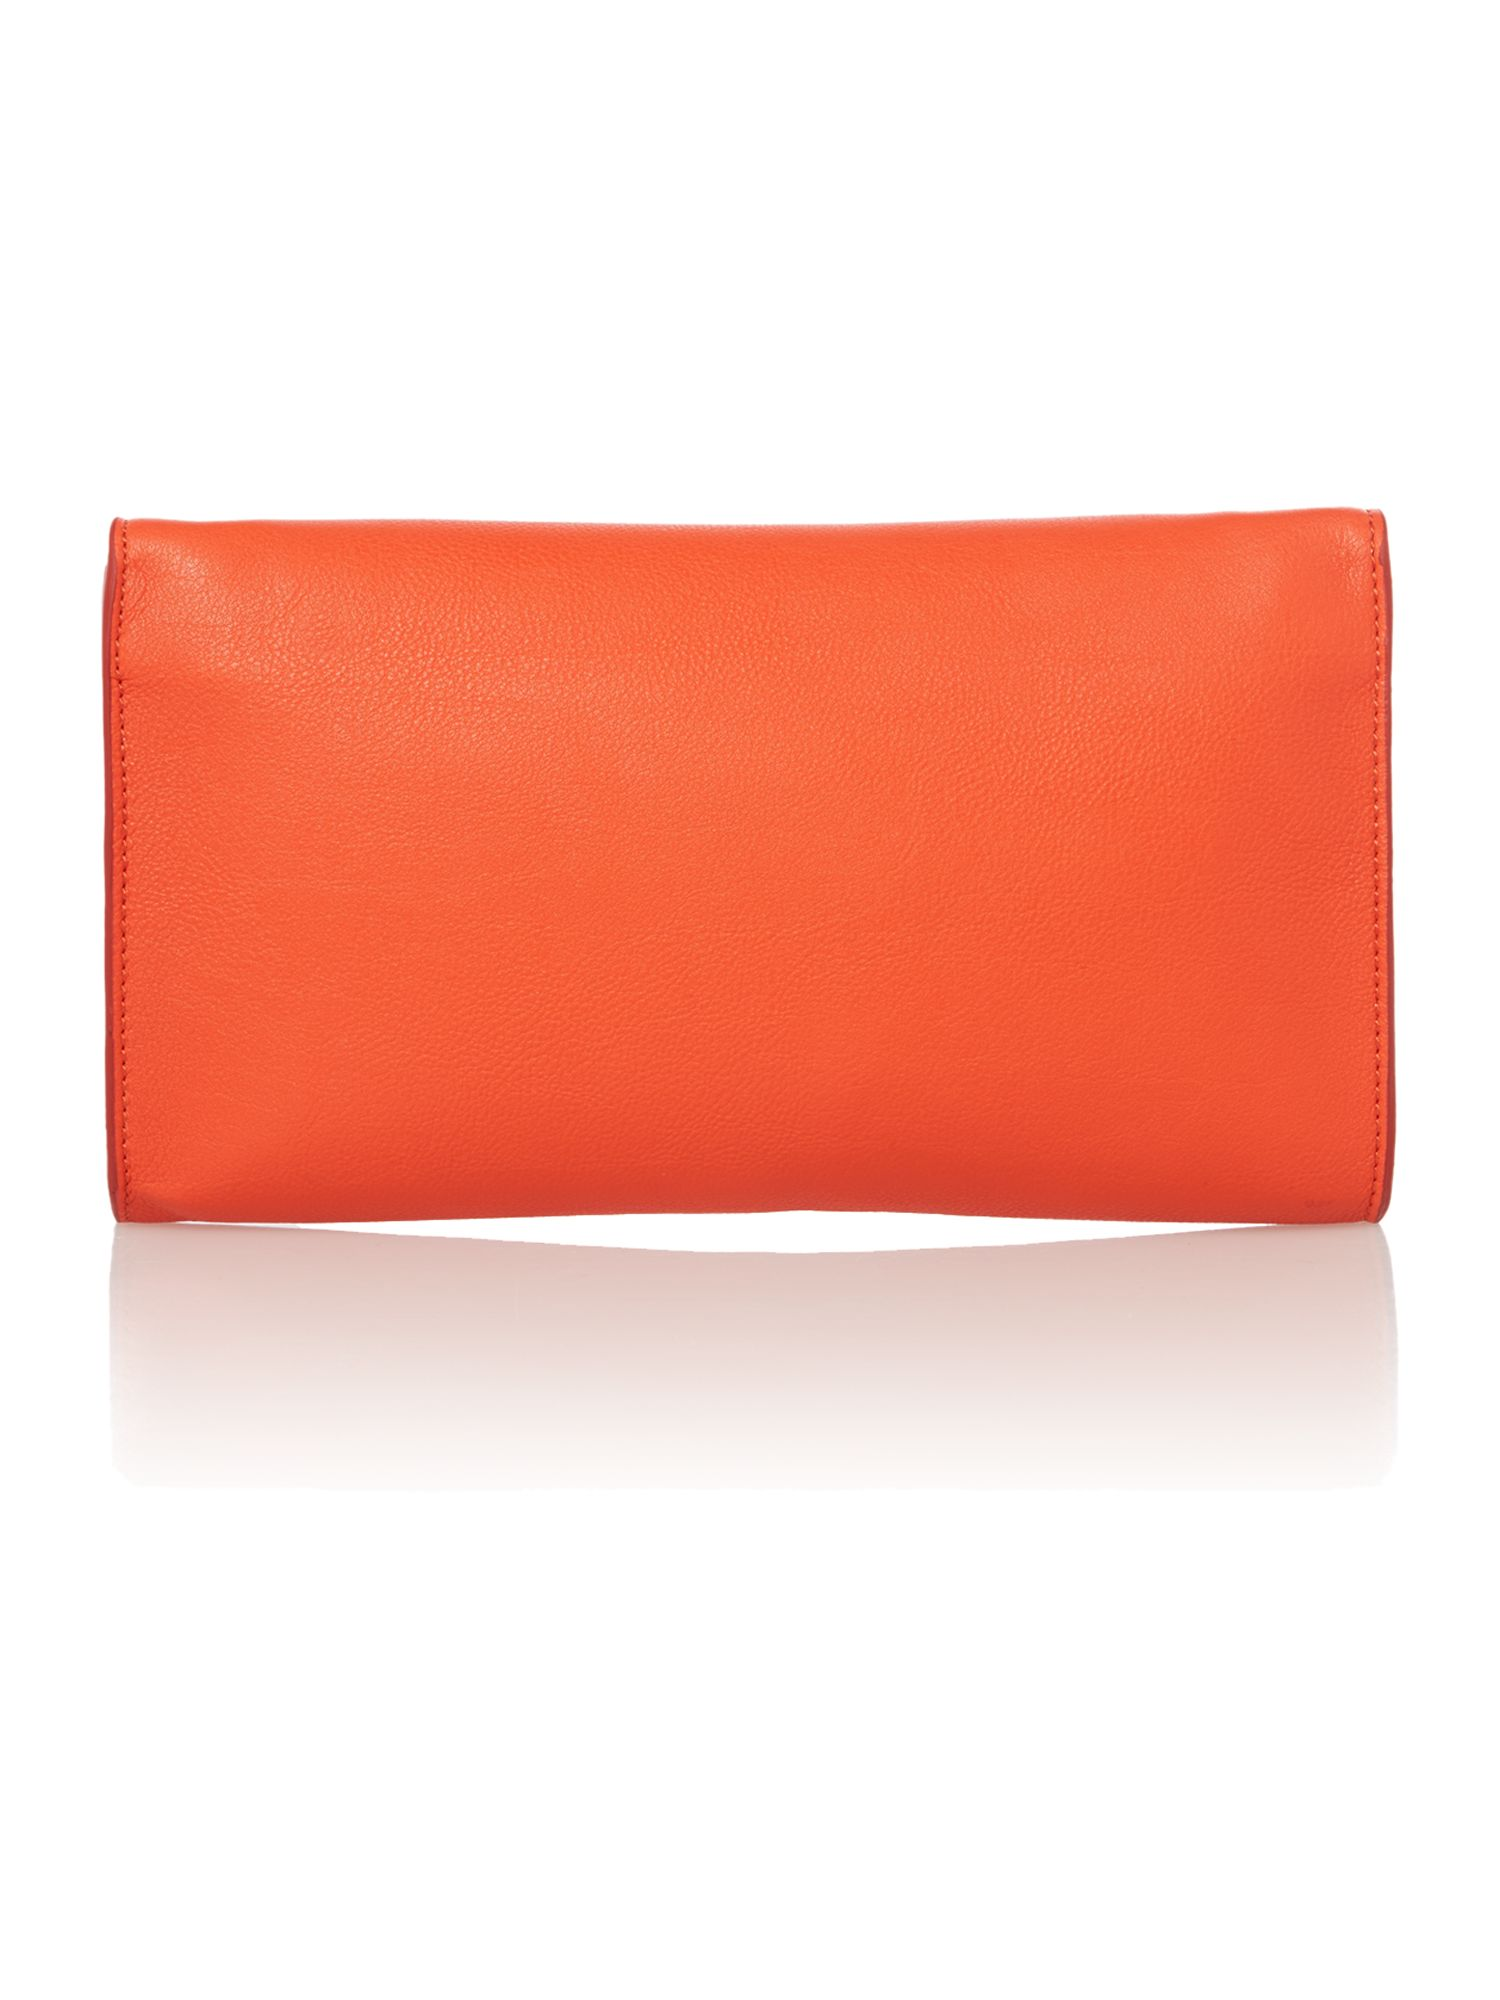 Dixie red clutch bag